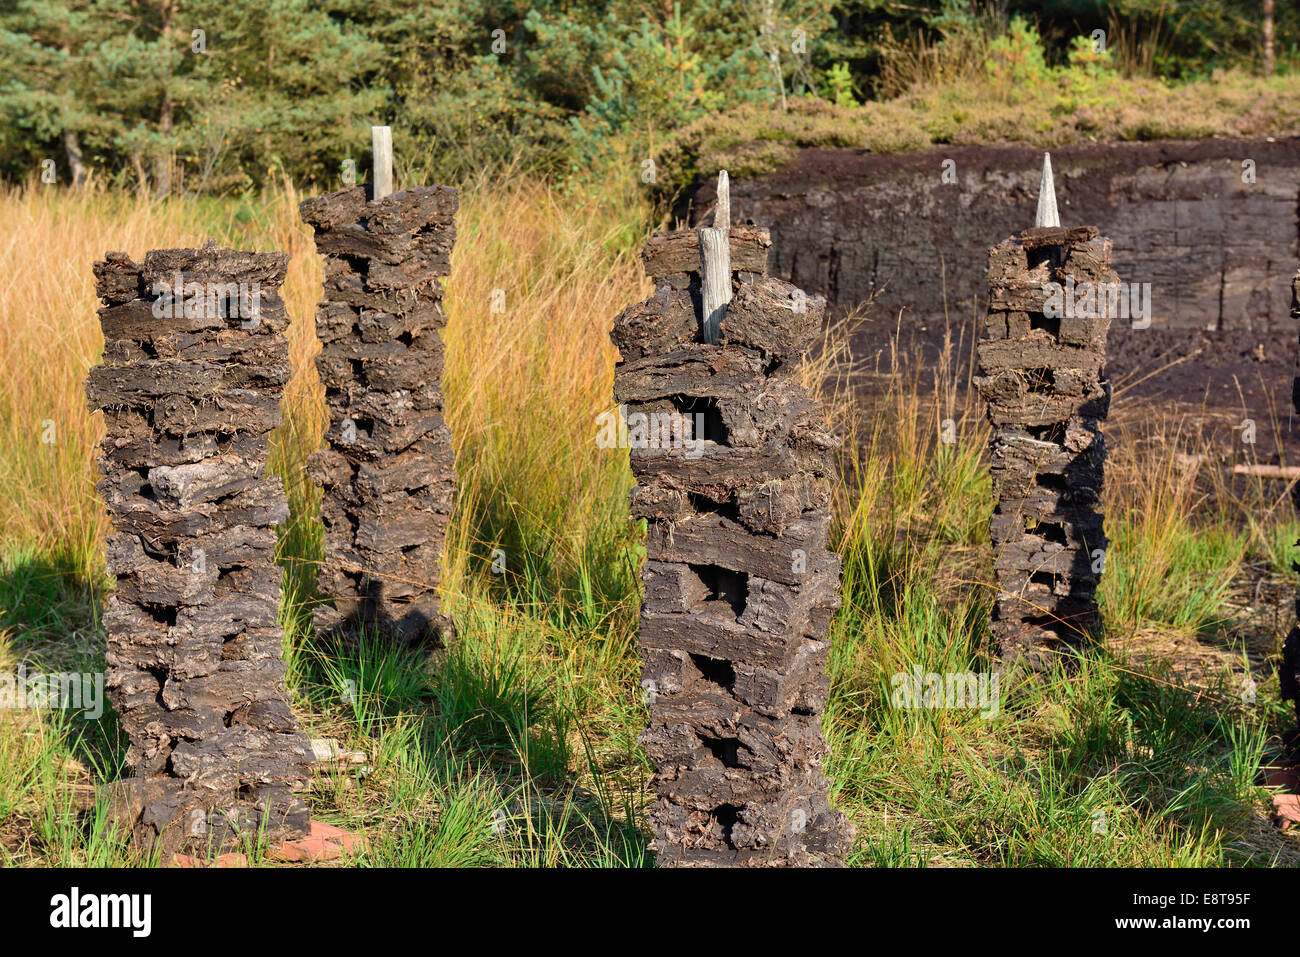 Stacks of peat sods left or drying in the traditional manner, Grundbeckenmoor Rosenheim, near Raubling, Upper Bavaria, - Stock Image